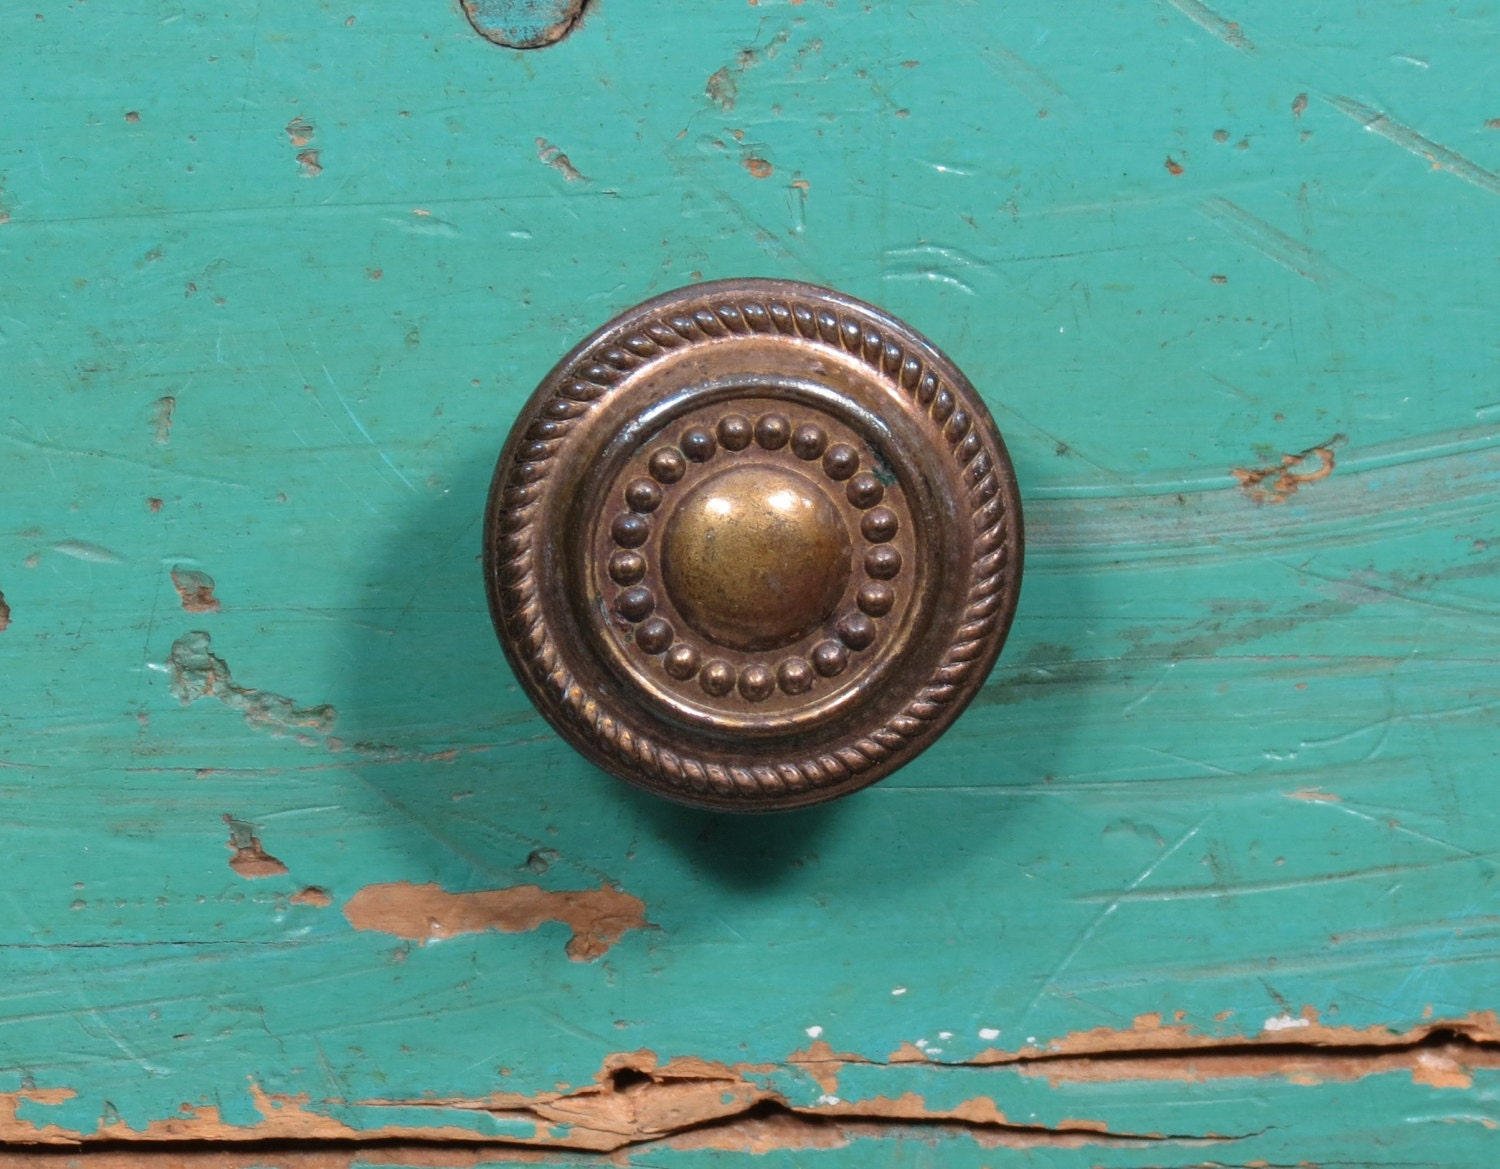 Vintage Drawer Pull . Brass Steel Knob . 1920s - 1940s Era . Ornate ...